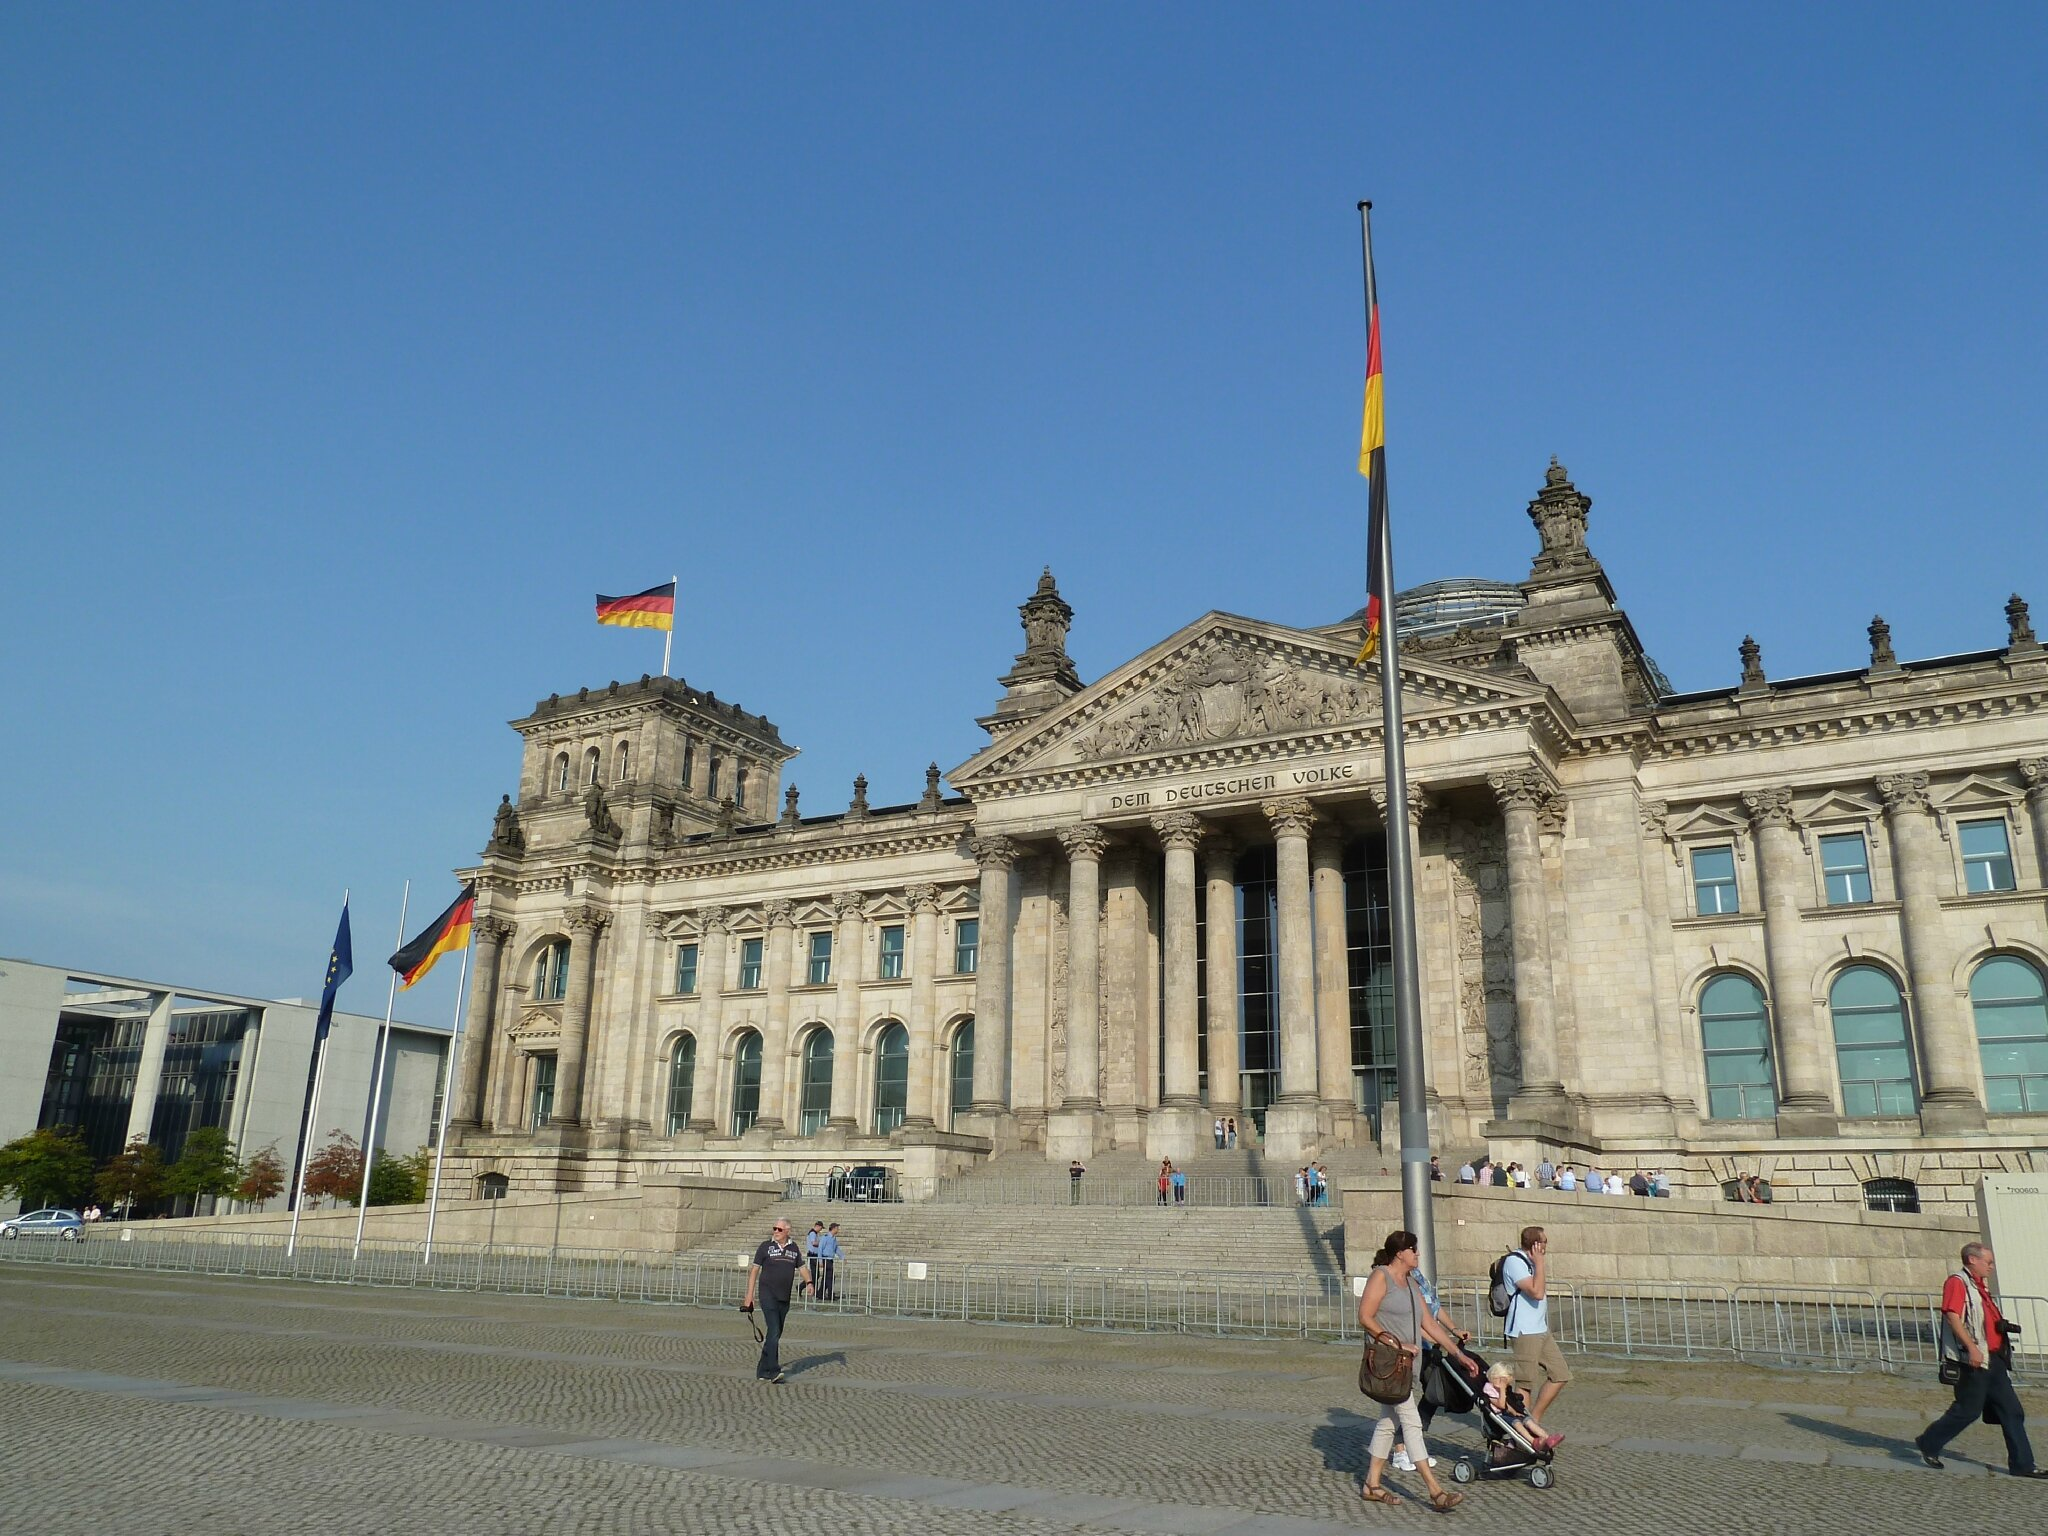 172 Le Reichstag